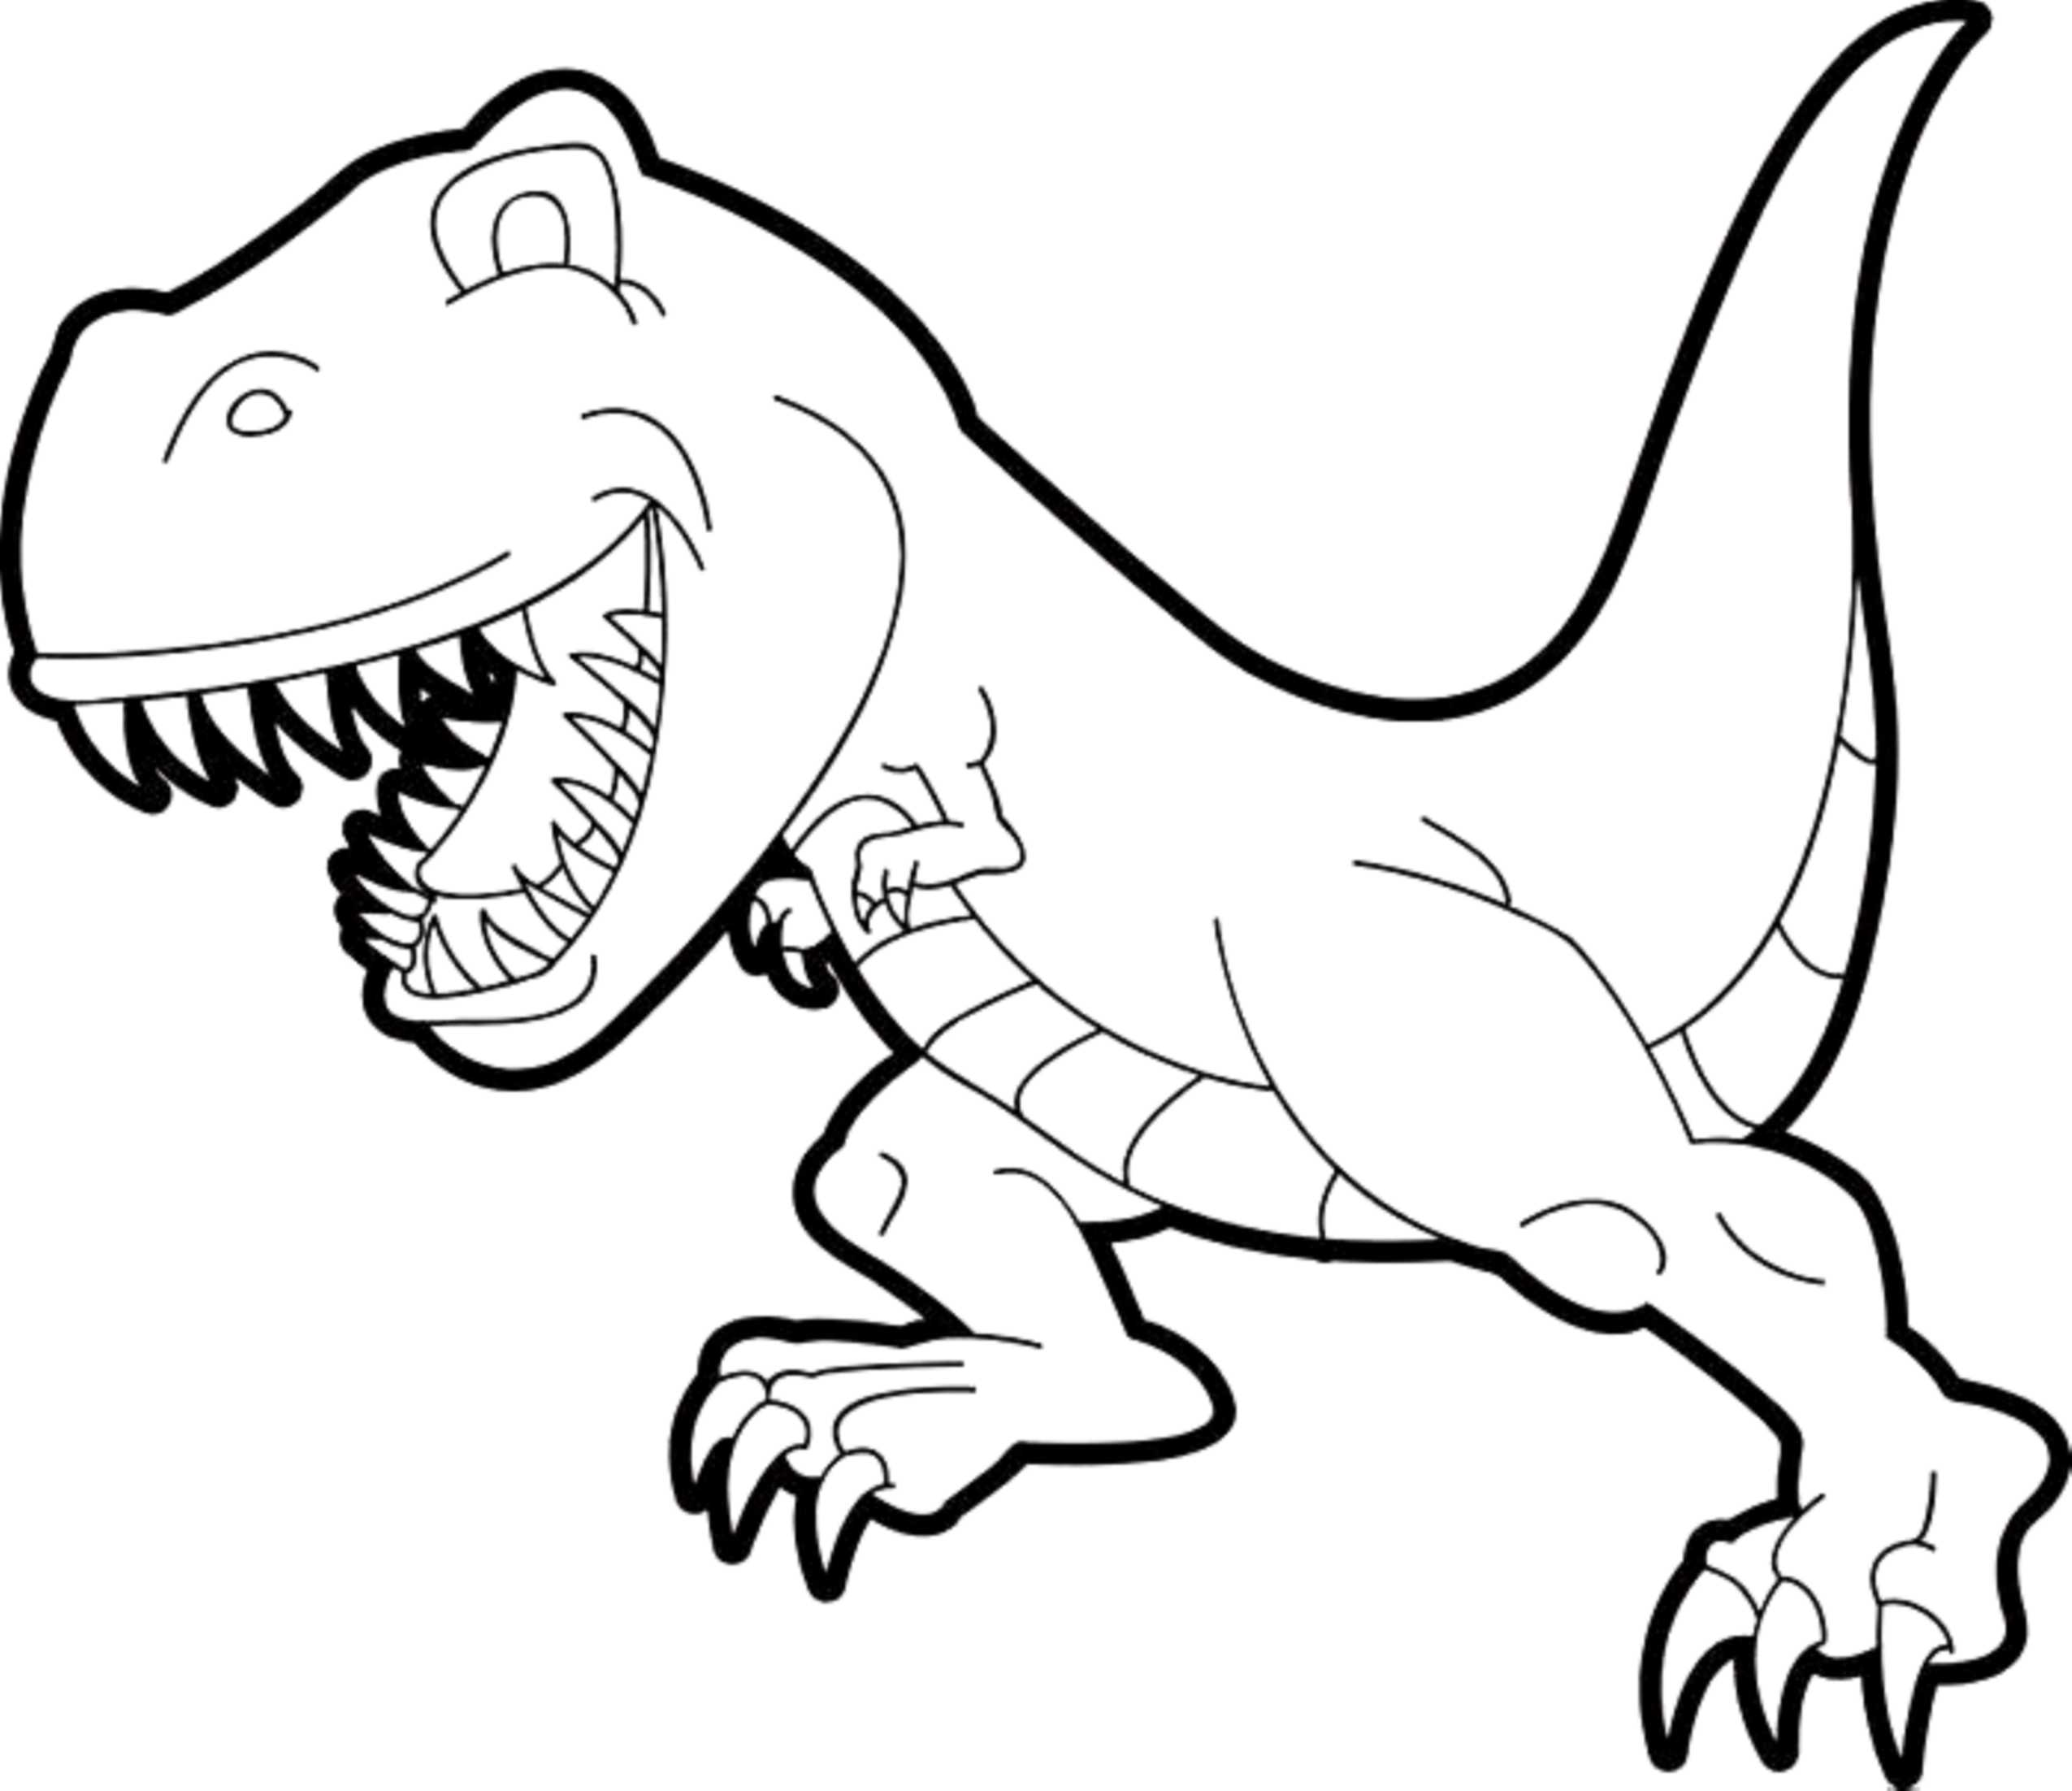 tyrannosaurus coloring page - cute t rex coloring page coloring home